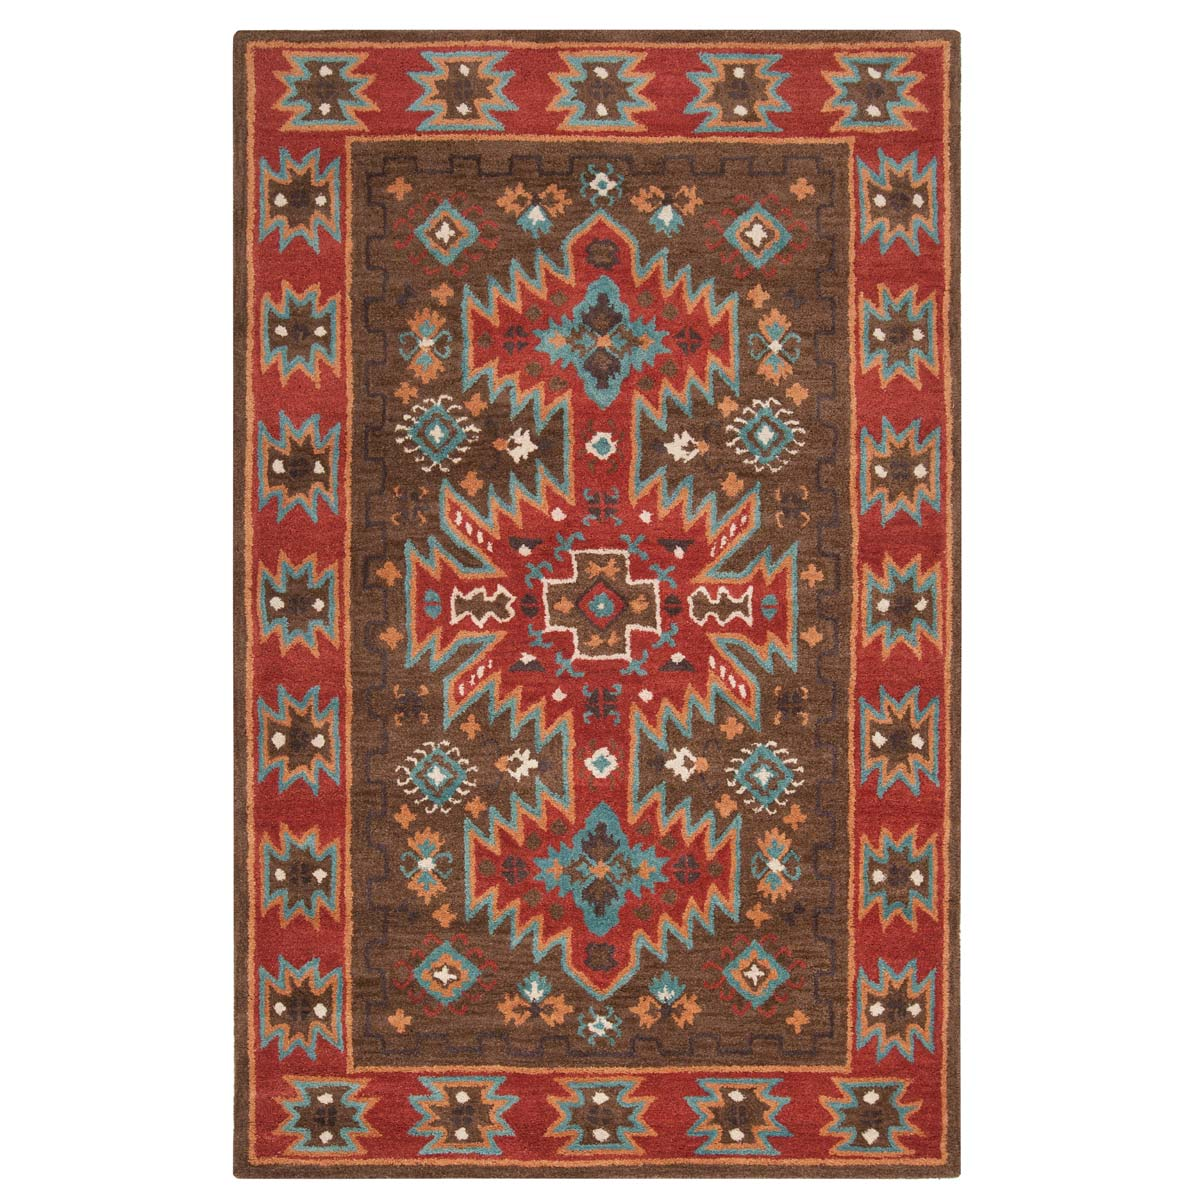 Arizona Chocolate Rug - 2 x 3